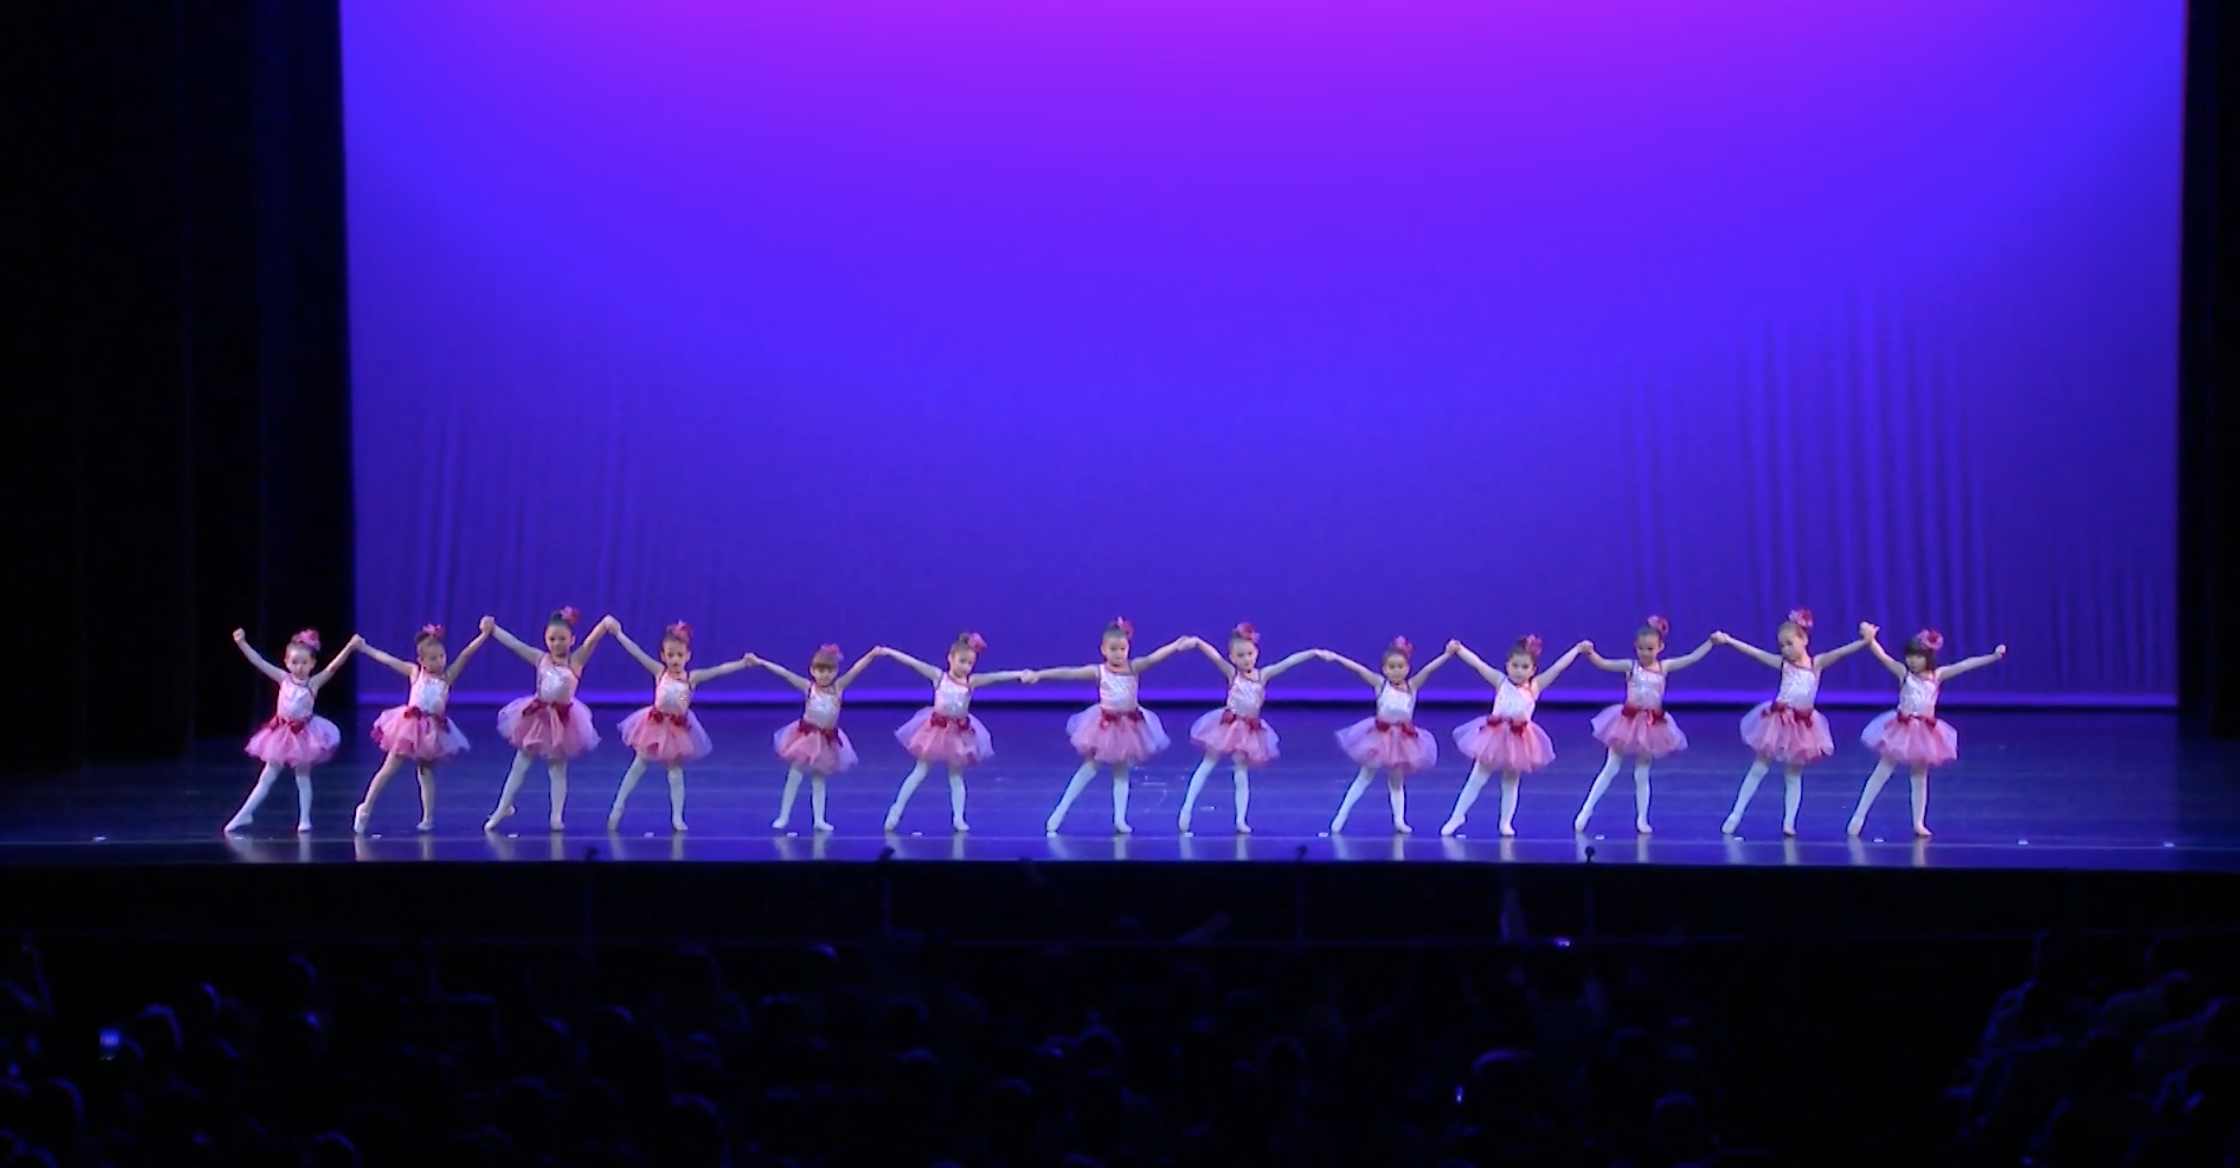 Rainbow - Miami Dance Academy